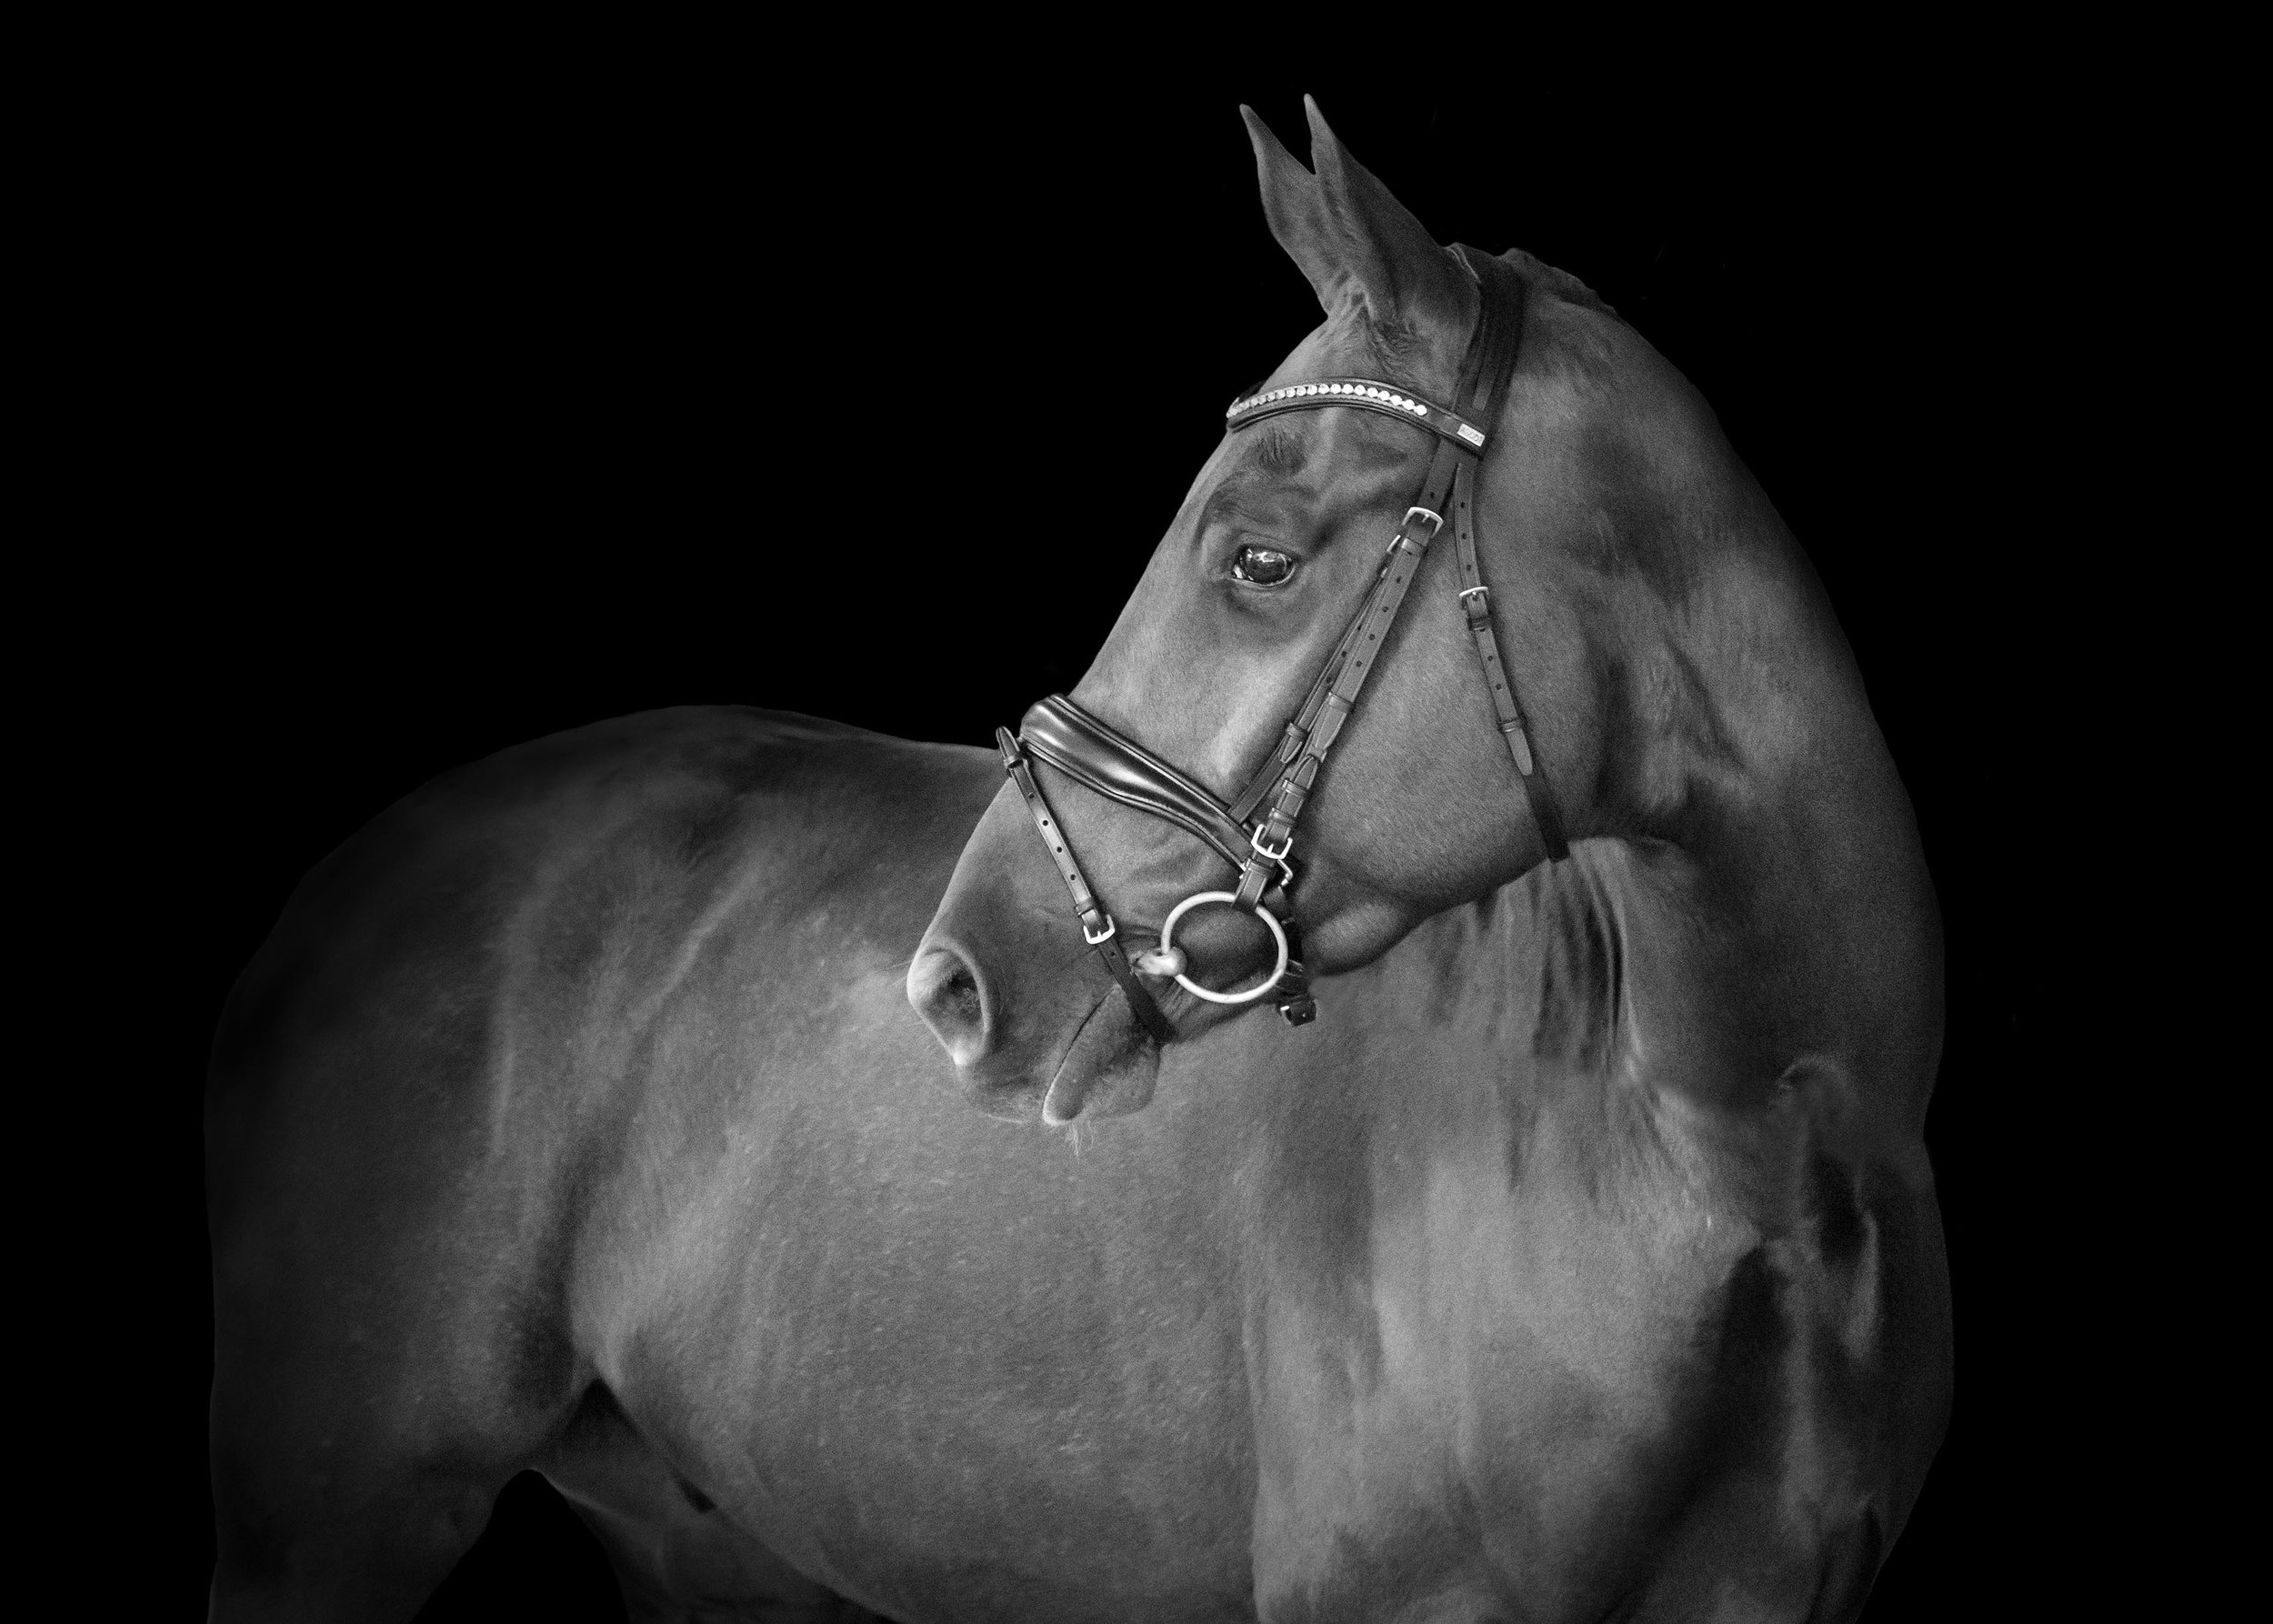 equine-horse-black-background copy.jpg